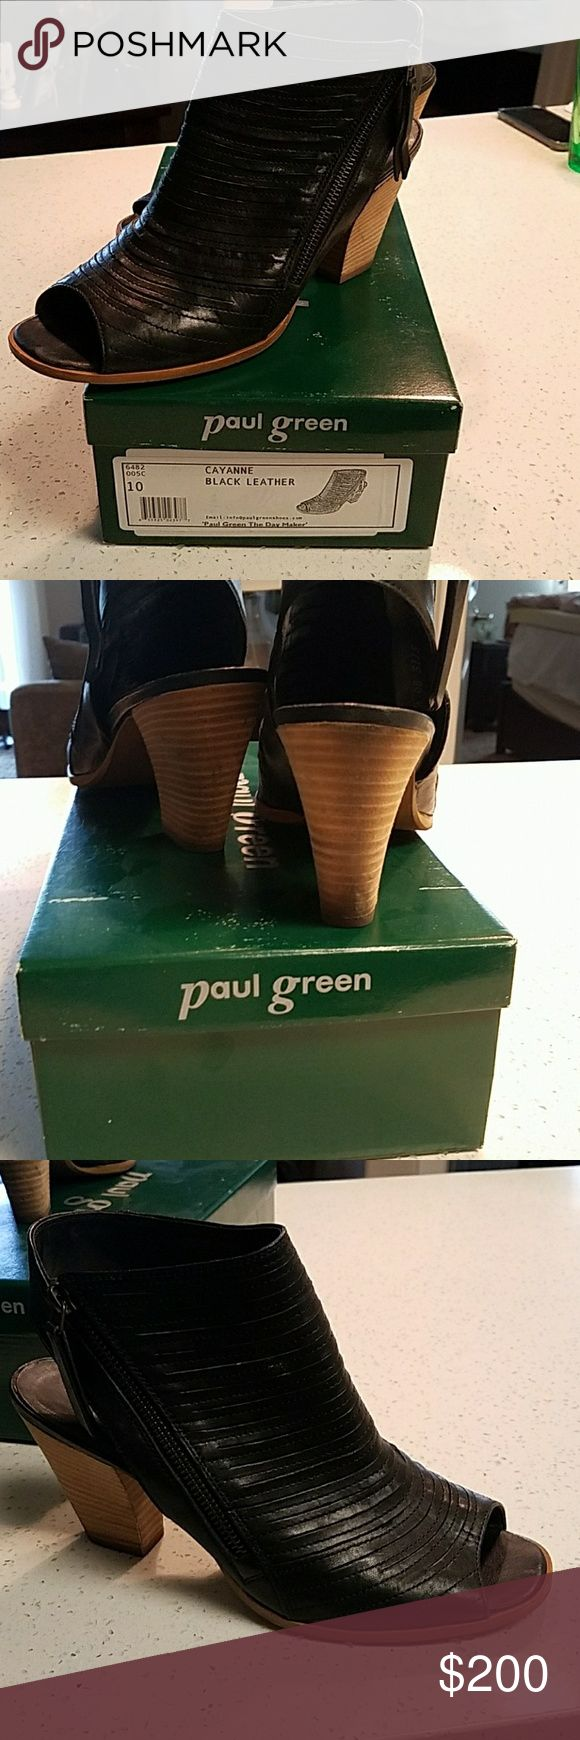 "Paul Green ""Cayenne"" Sandal Super soft leather ""shootie"" pleated leather with fumctional zipper detail. 3"" heel height. Extremely comfortable. Very gently worn. Paul Green Shoes Sandals"